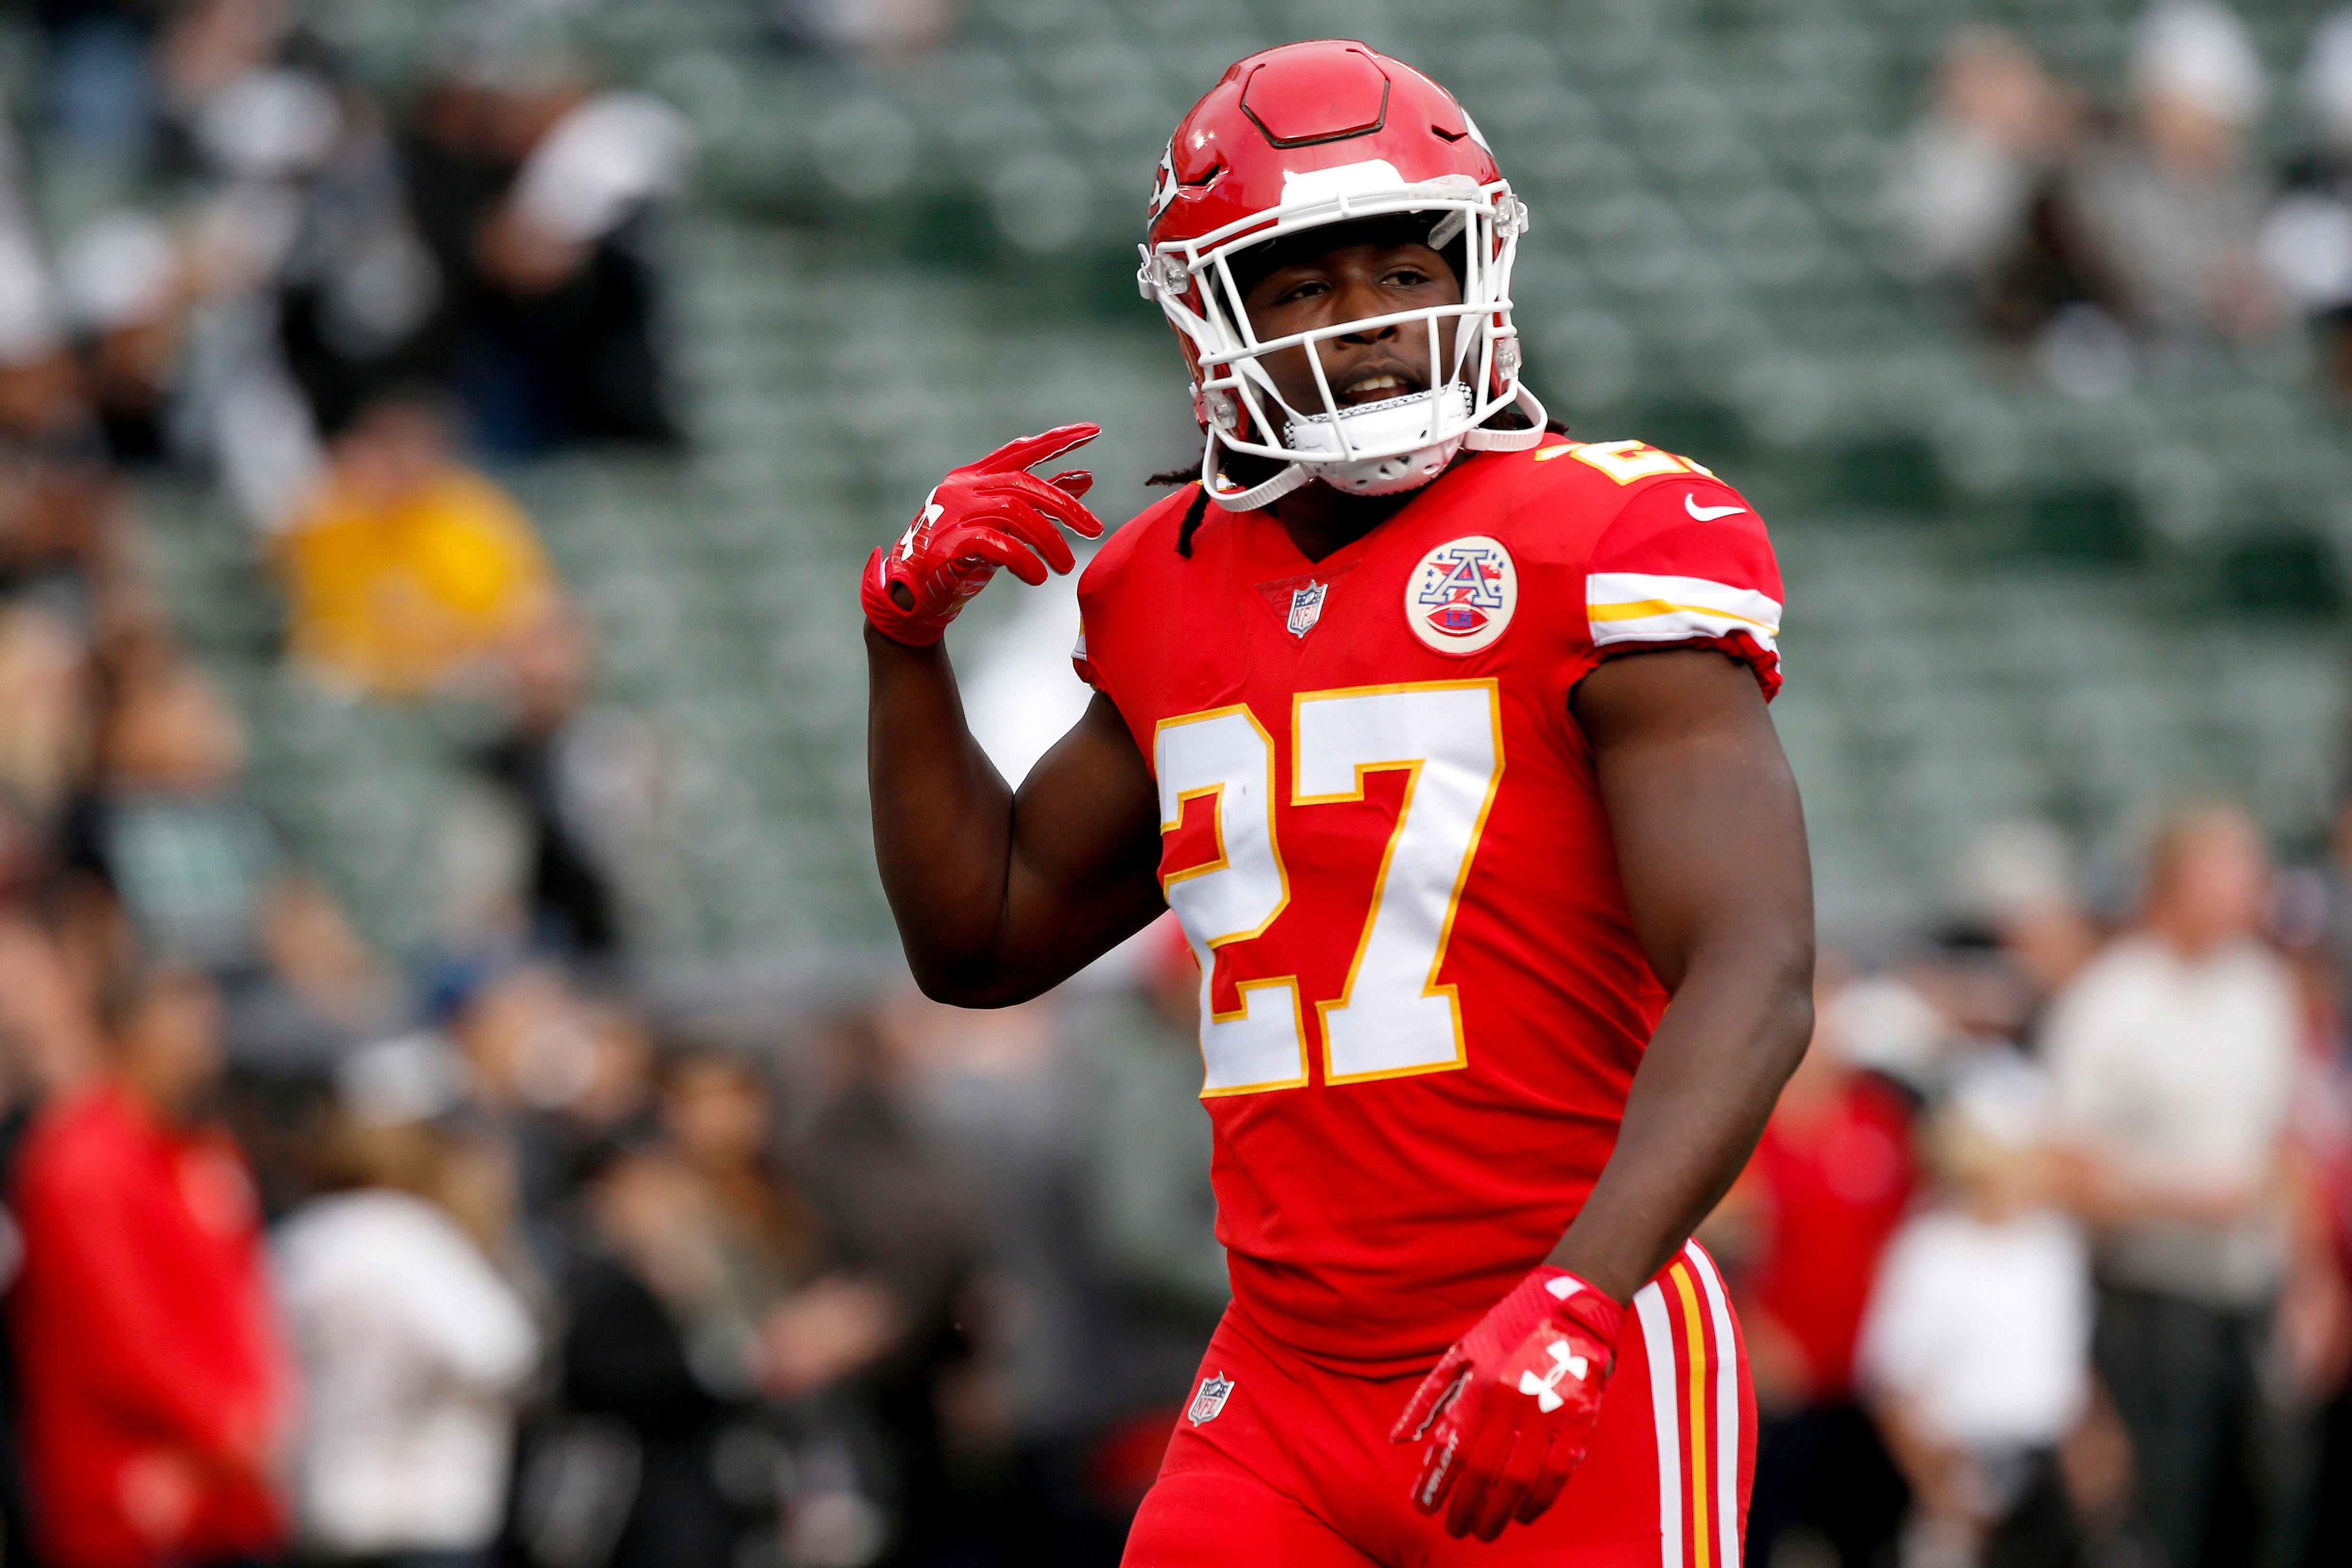 Opinion: NFL commissioner Roger Goodell does right thing with eight-game suspension of Kareem Hunt